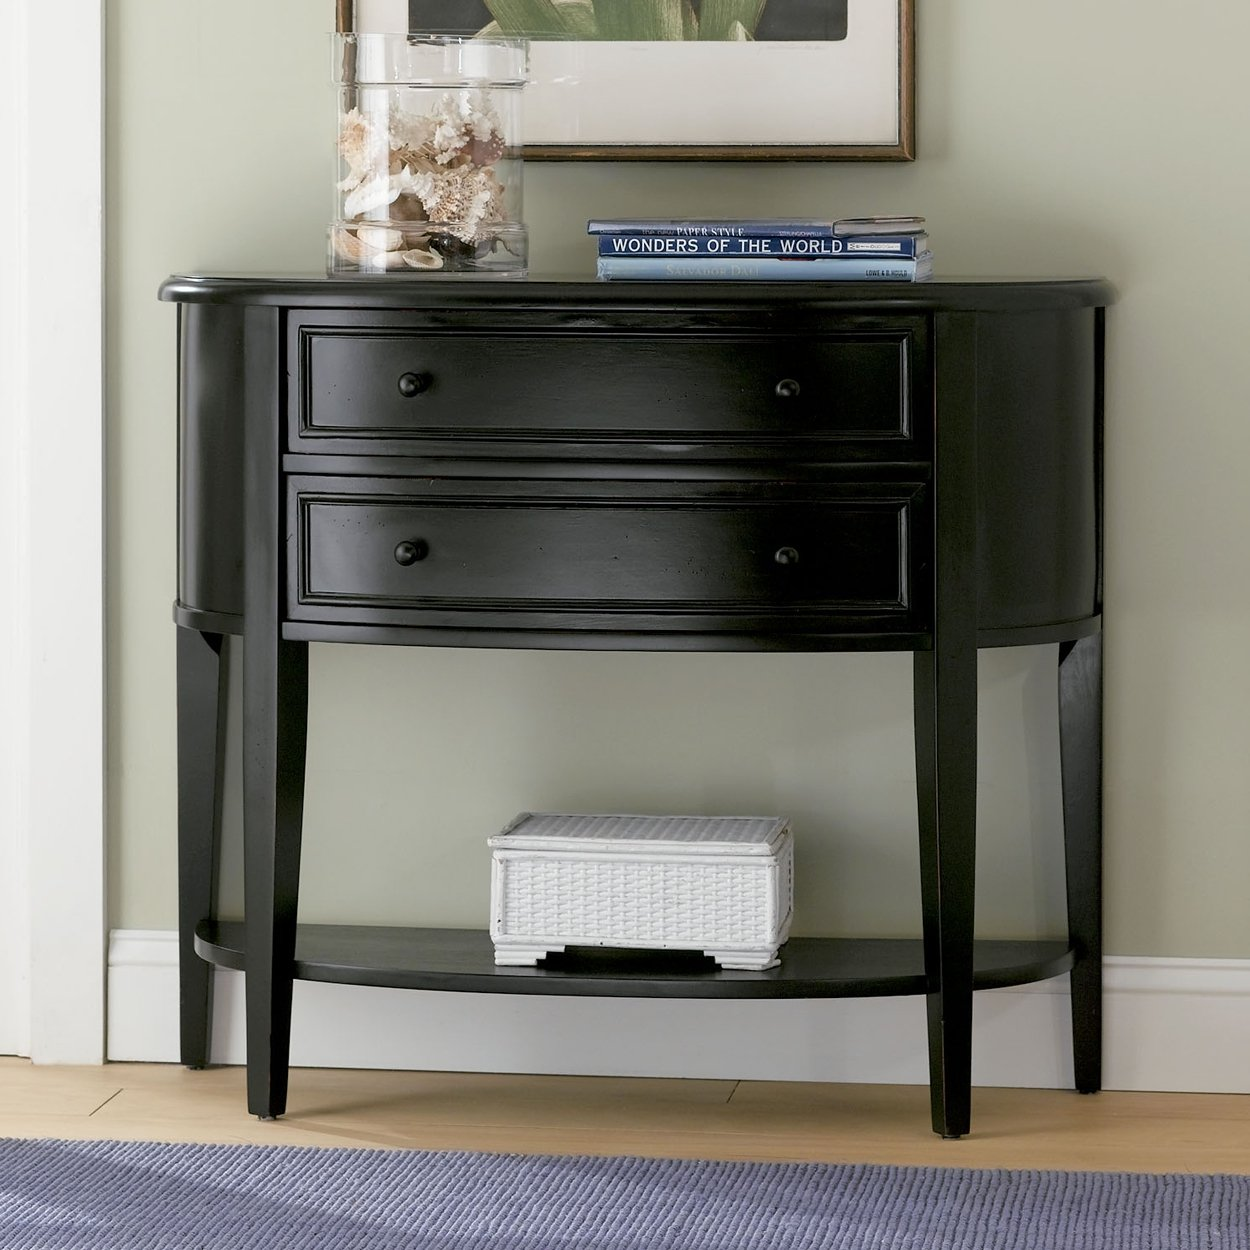 piquant entry way mirror tips also styling your entryway table glancing hallway ideas plus storage shoes accent with baskets garden bench and threshold nightstand metal floor west